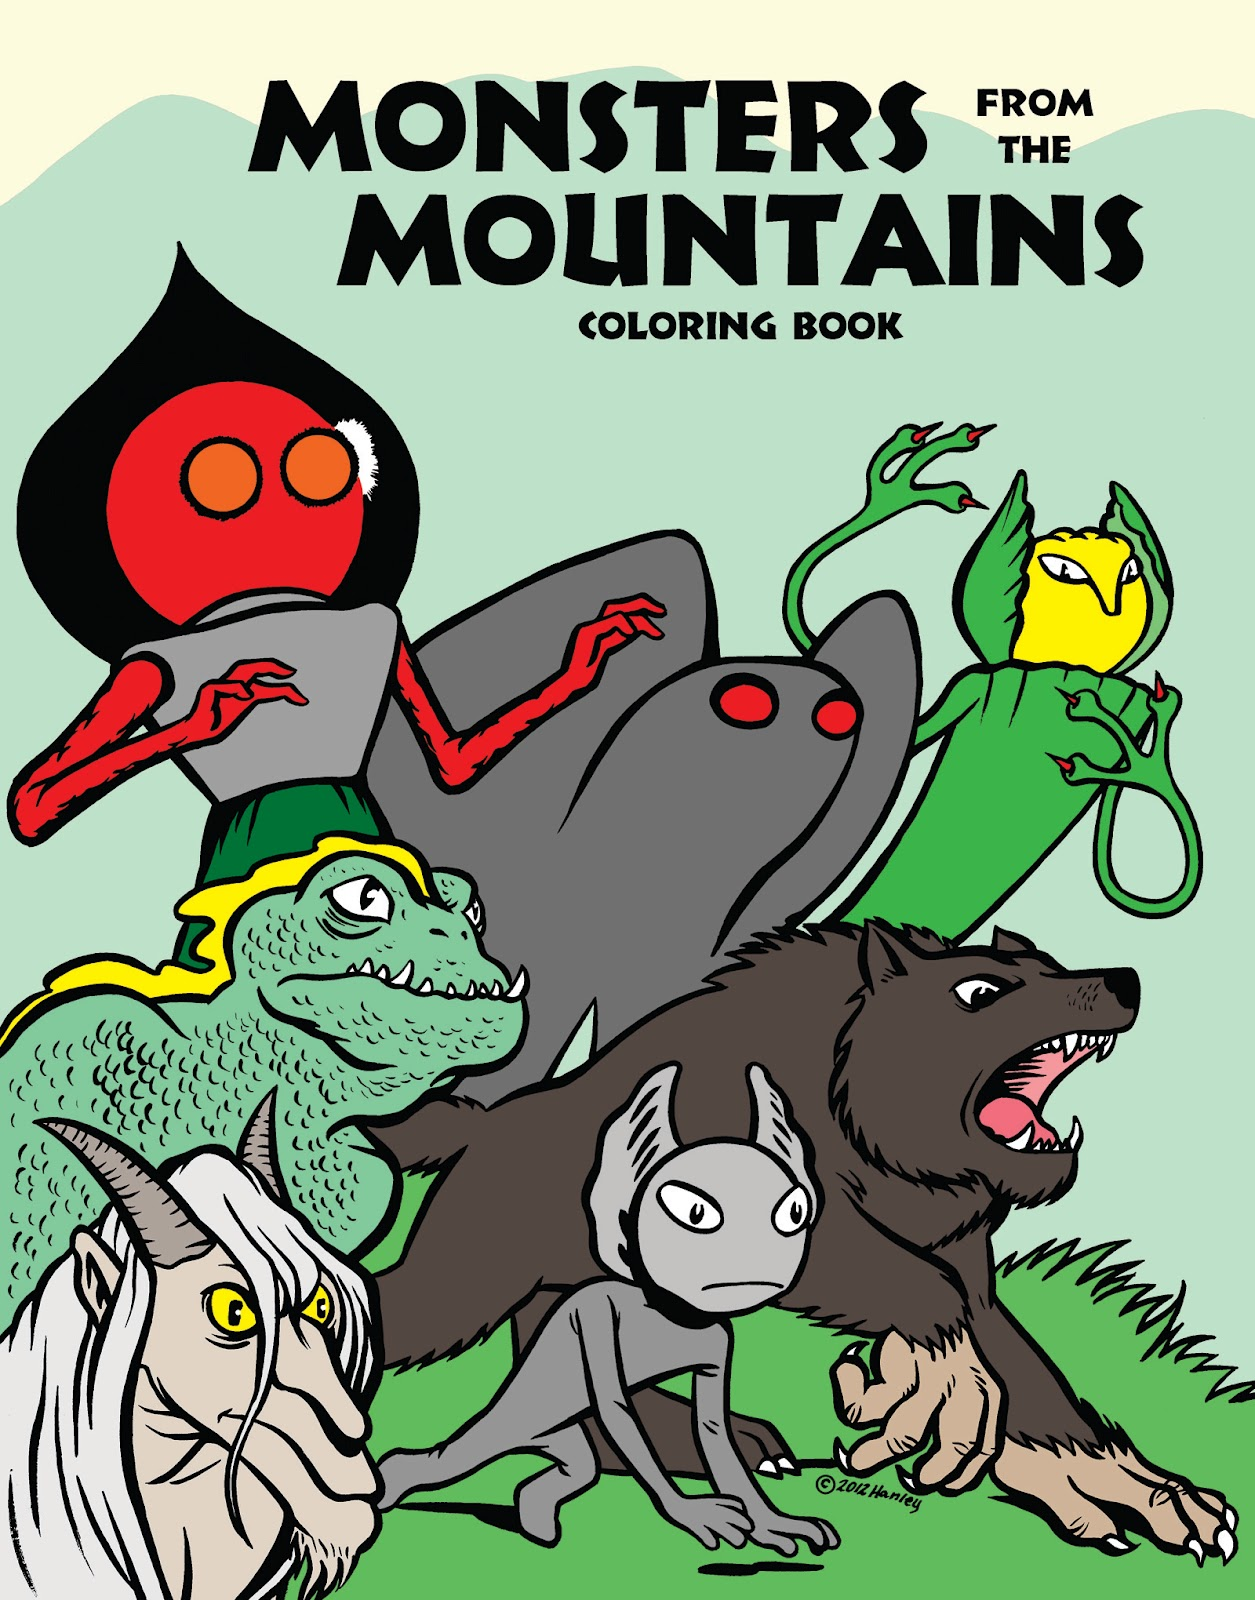 monsters from the mountains coloring book